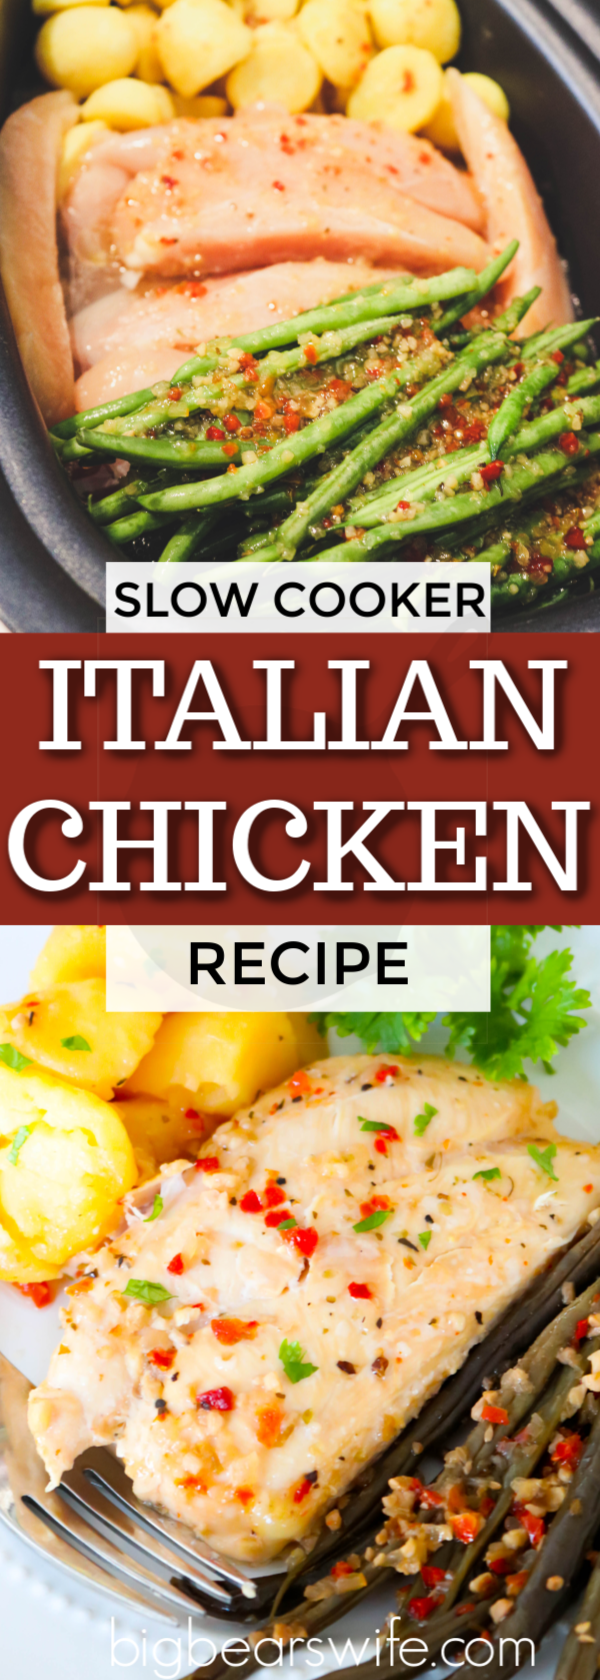 Drag that slow cooker out and make thisSlow Cooker Italian Chicken, Potatoes and Green Beans for dinner with just a few ingredients and a bit of time in the slow cooker! #SlowCooker #ItalianChicken via @bigbearswife